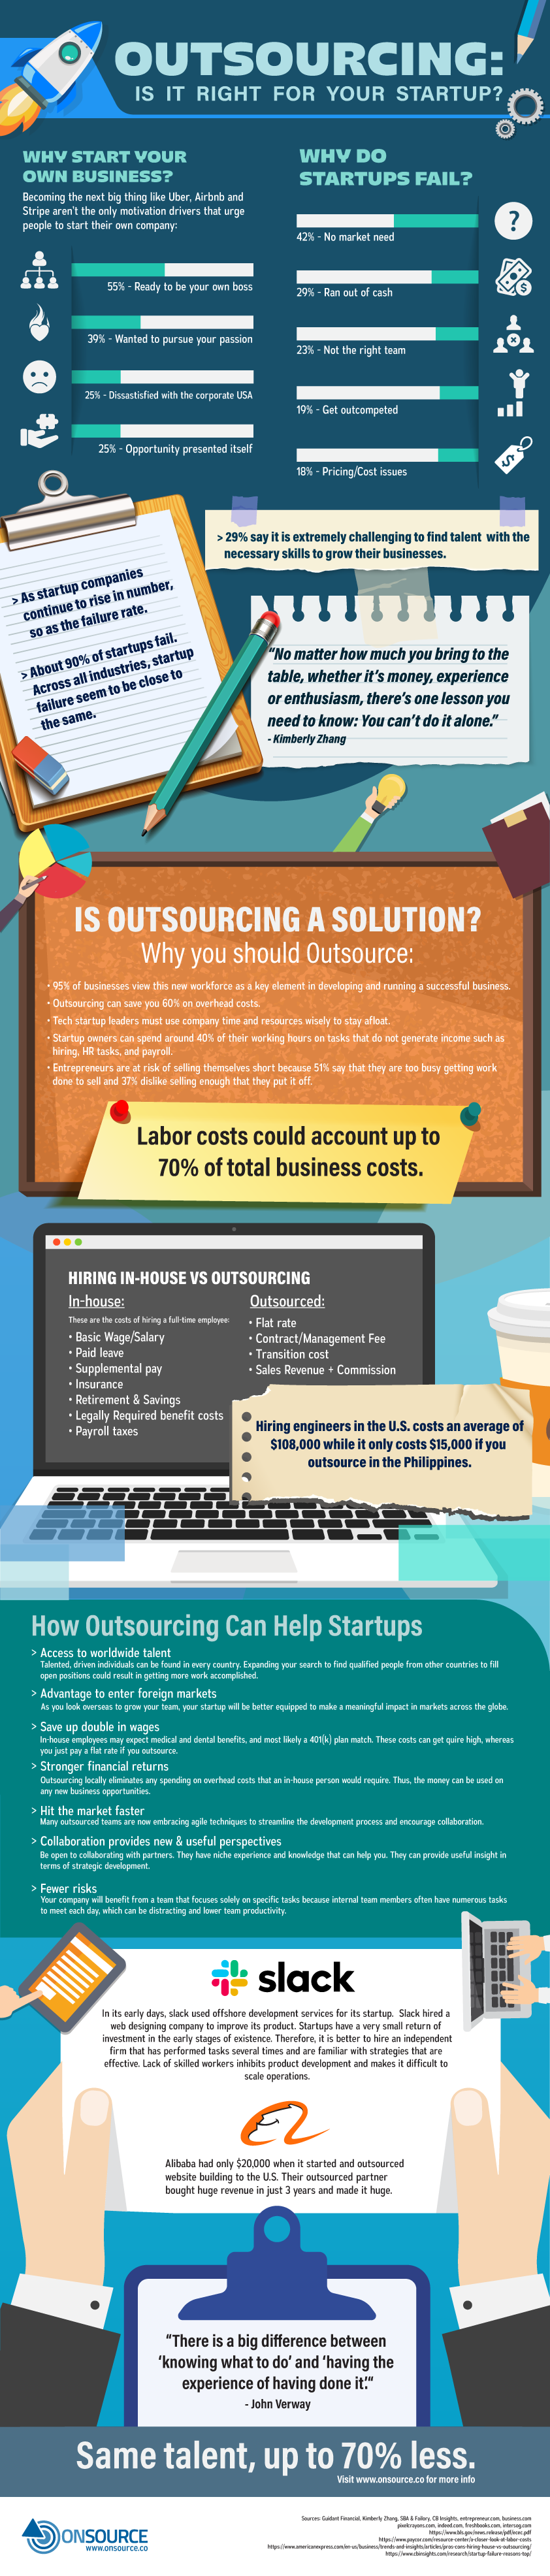 Outsourcing: Is It Right For Your Startup?